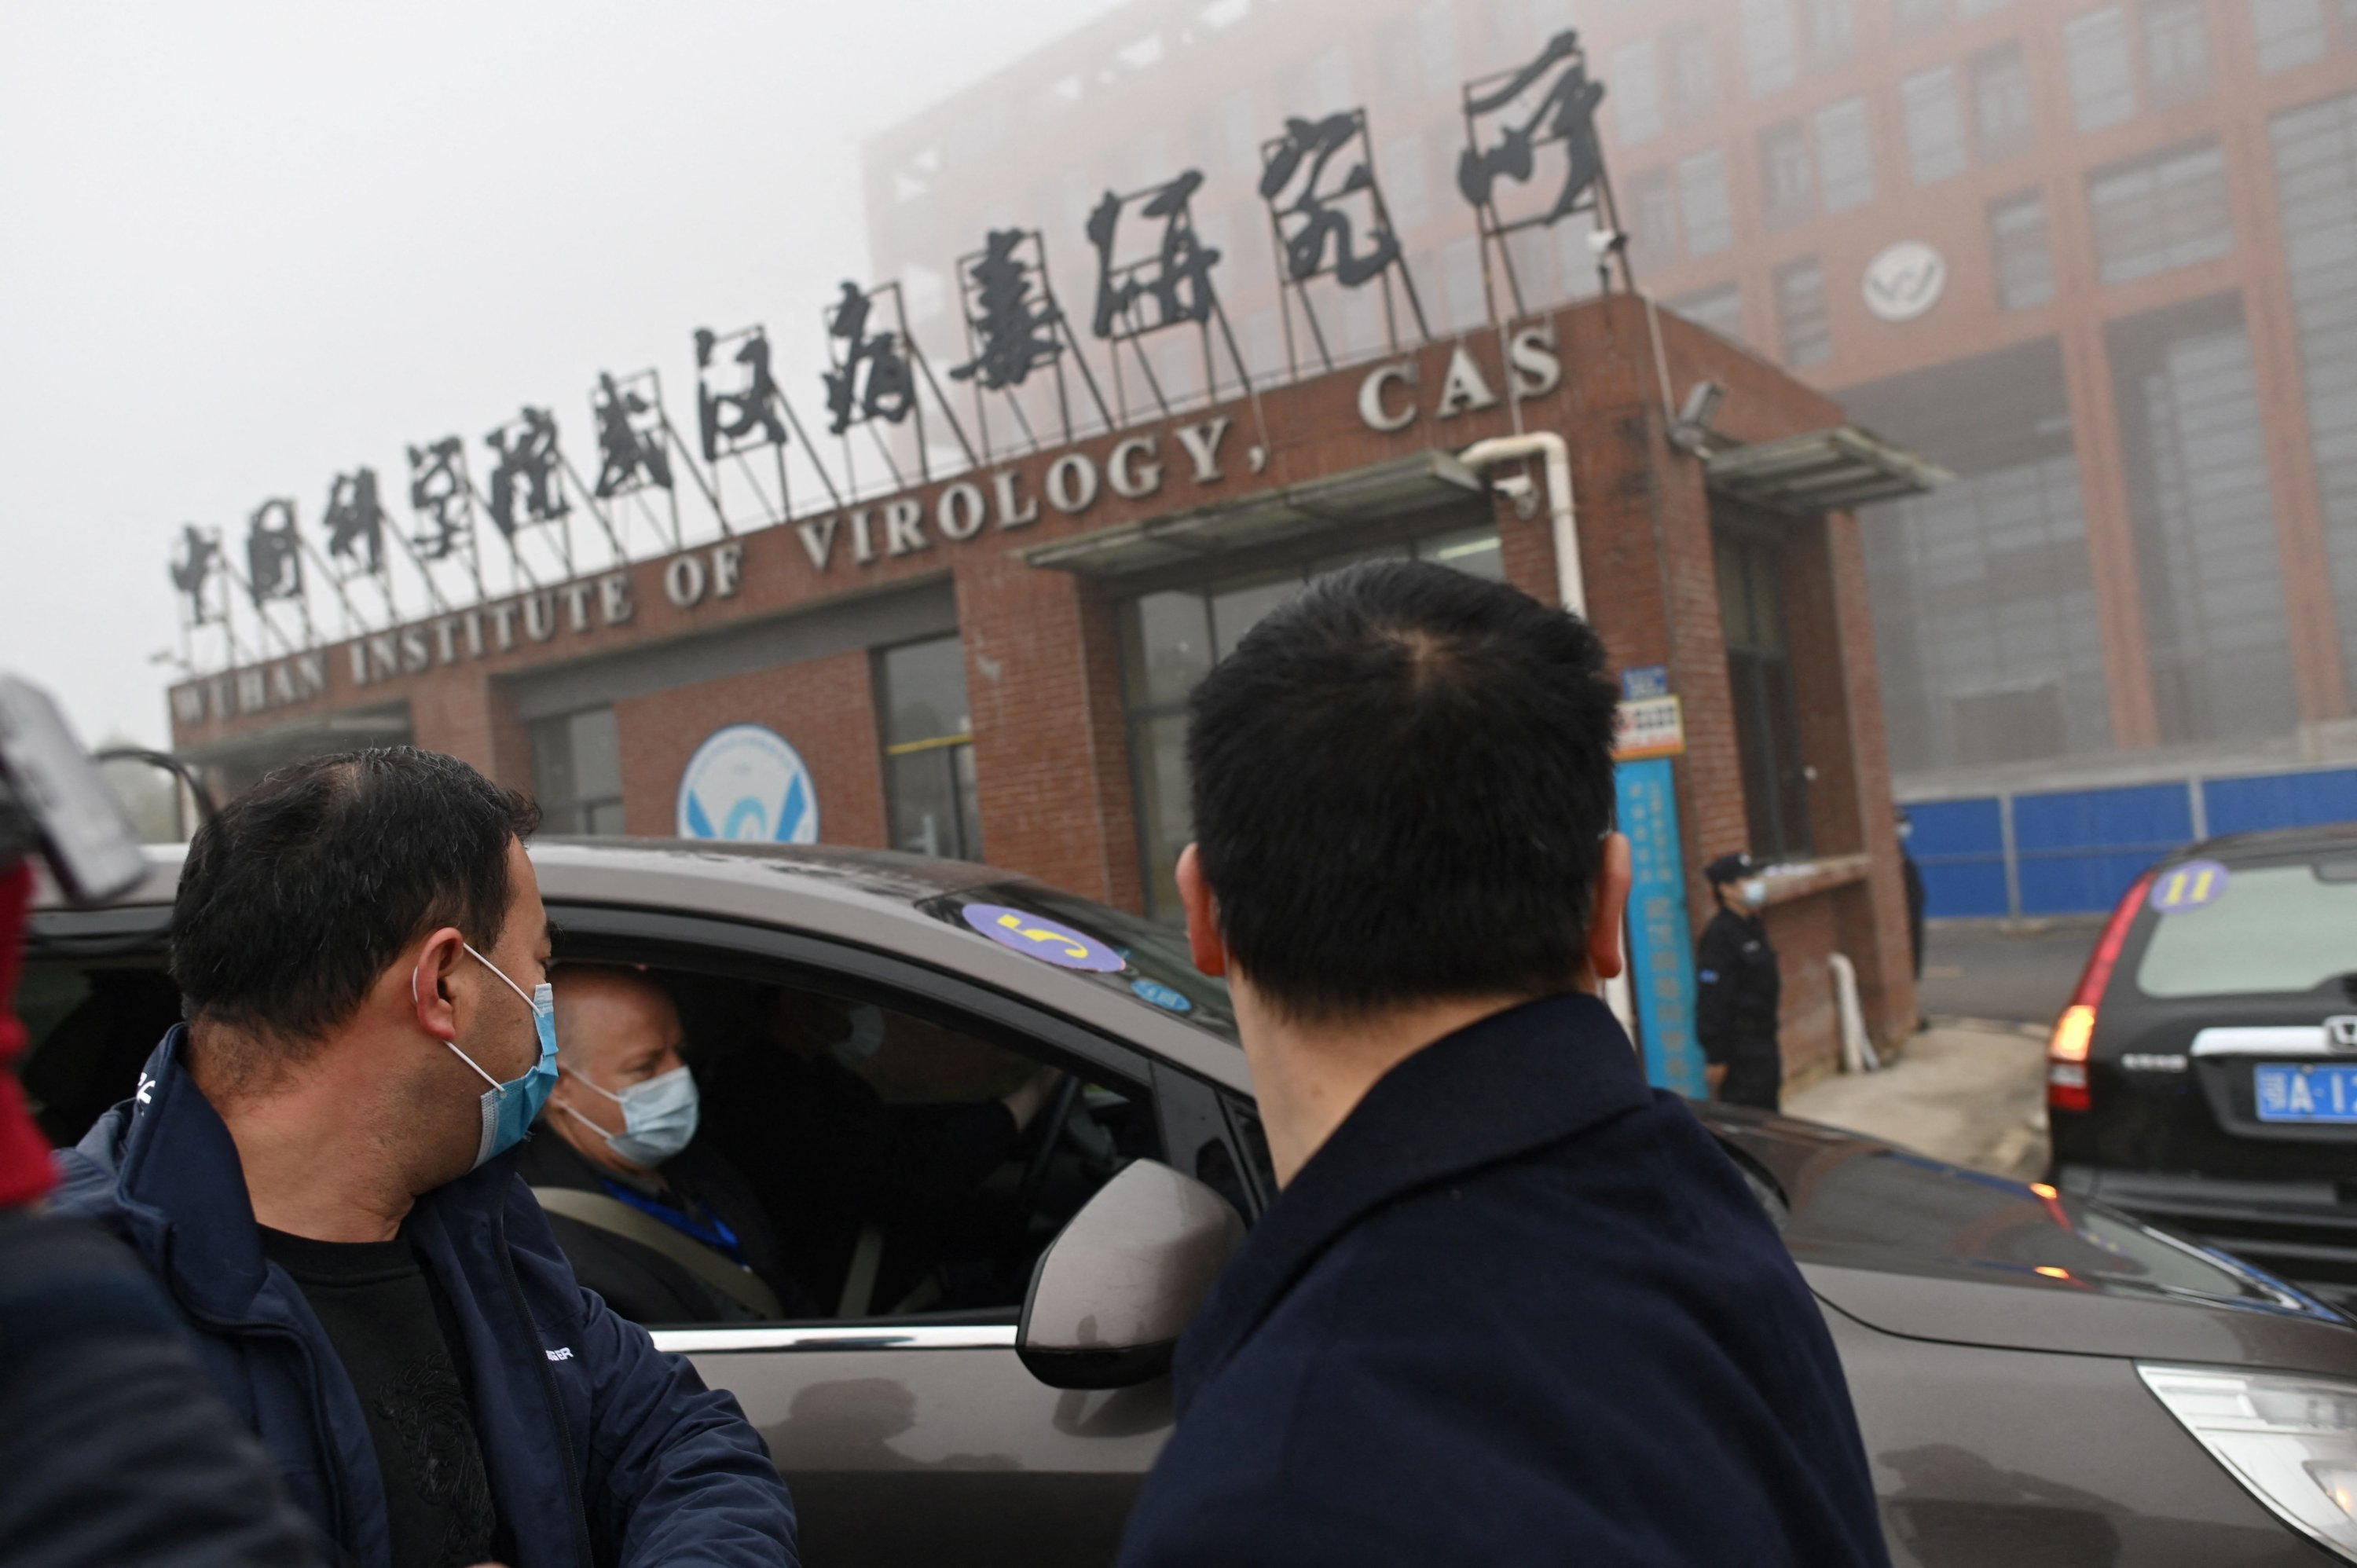 Members of the World Health Organization (WHO) team investigating the origins of the coronavirus arrive by car at the Wuhan Institute of Virology in Wuhan, Hubei province, central China, Feb. 3, 2021. (Photo by HECTOR RETAMAL / AFP)